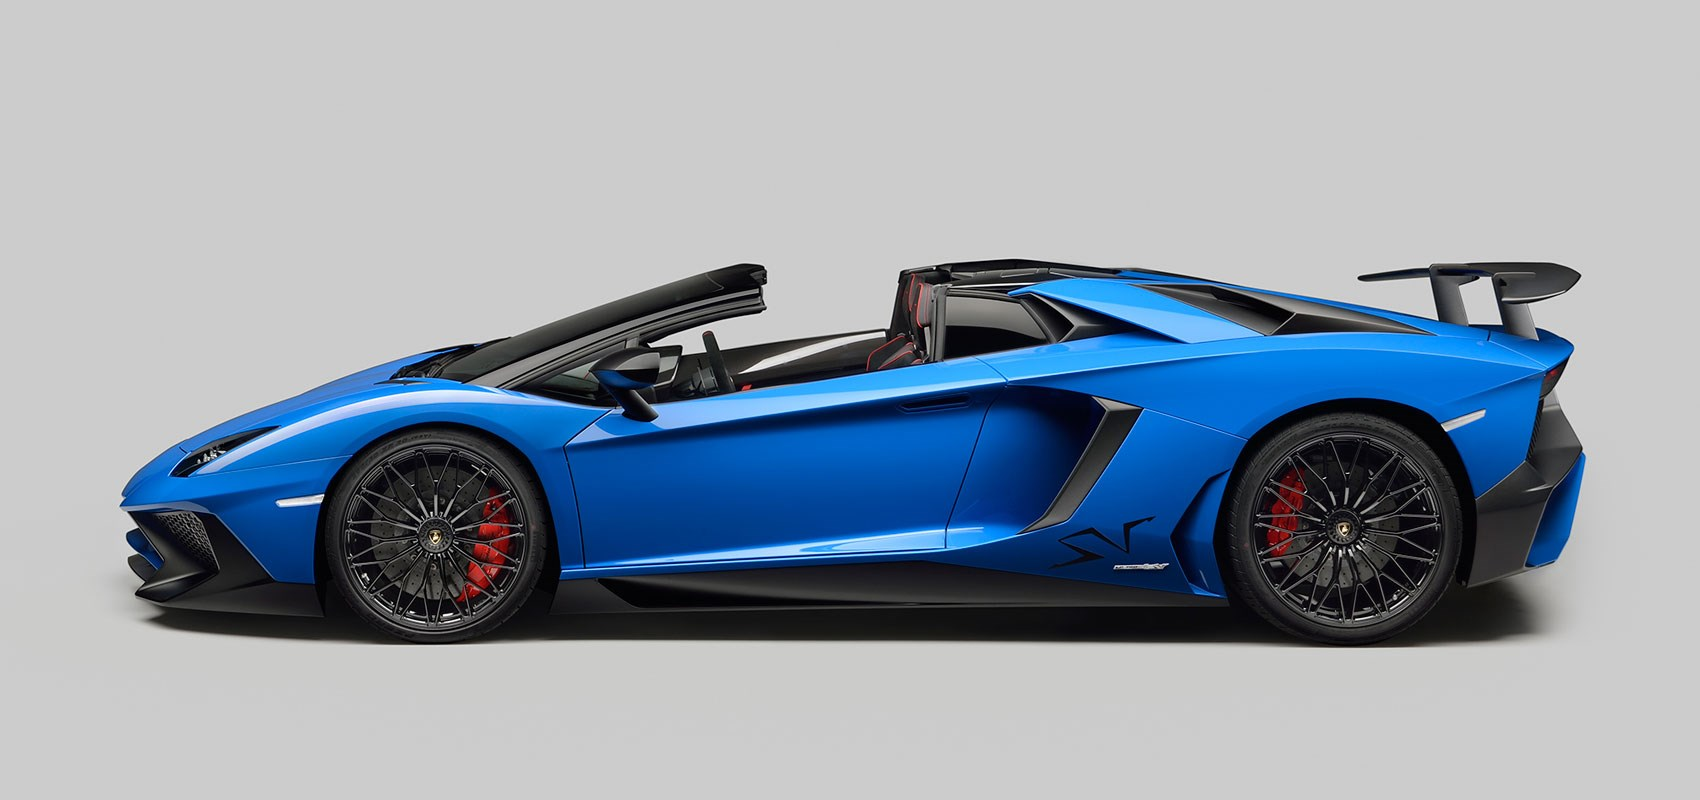 Lamborghini Aventador Super Veloce Roadster 2016 The Sv Blows Its